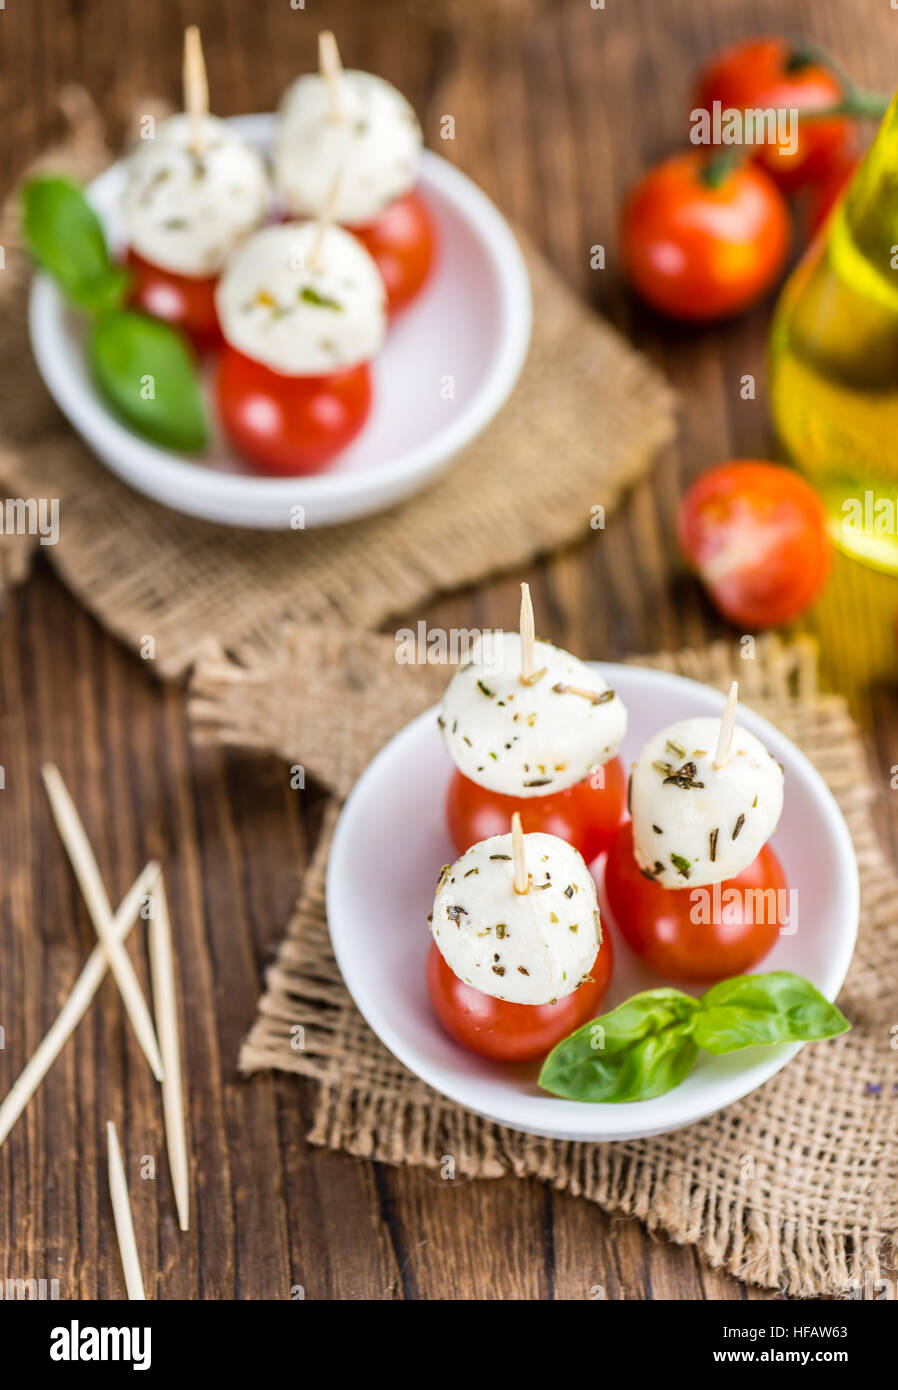 Portion of Mozzarella with Tomatoes on an old wooden table (selective focus) - Stock Image